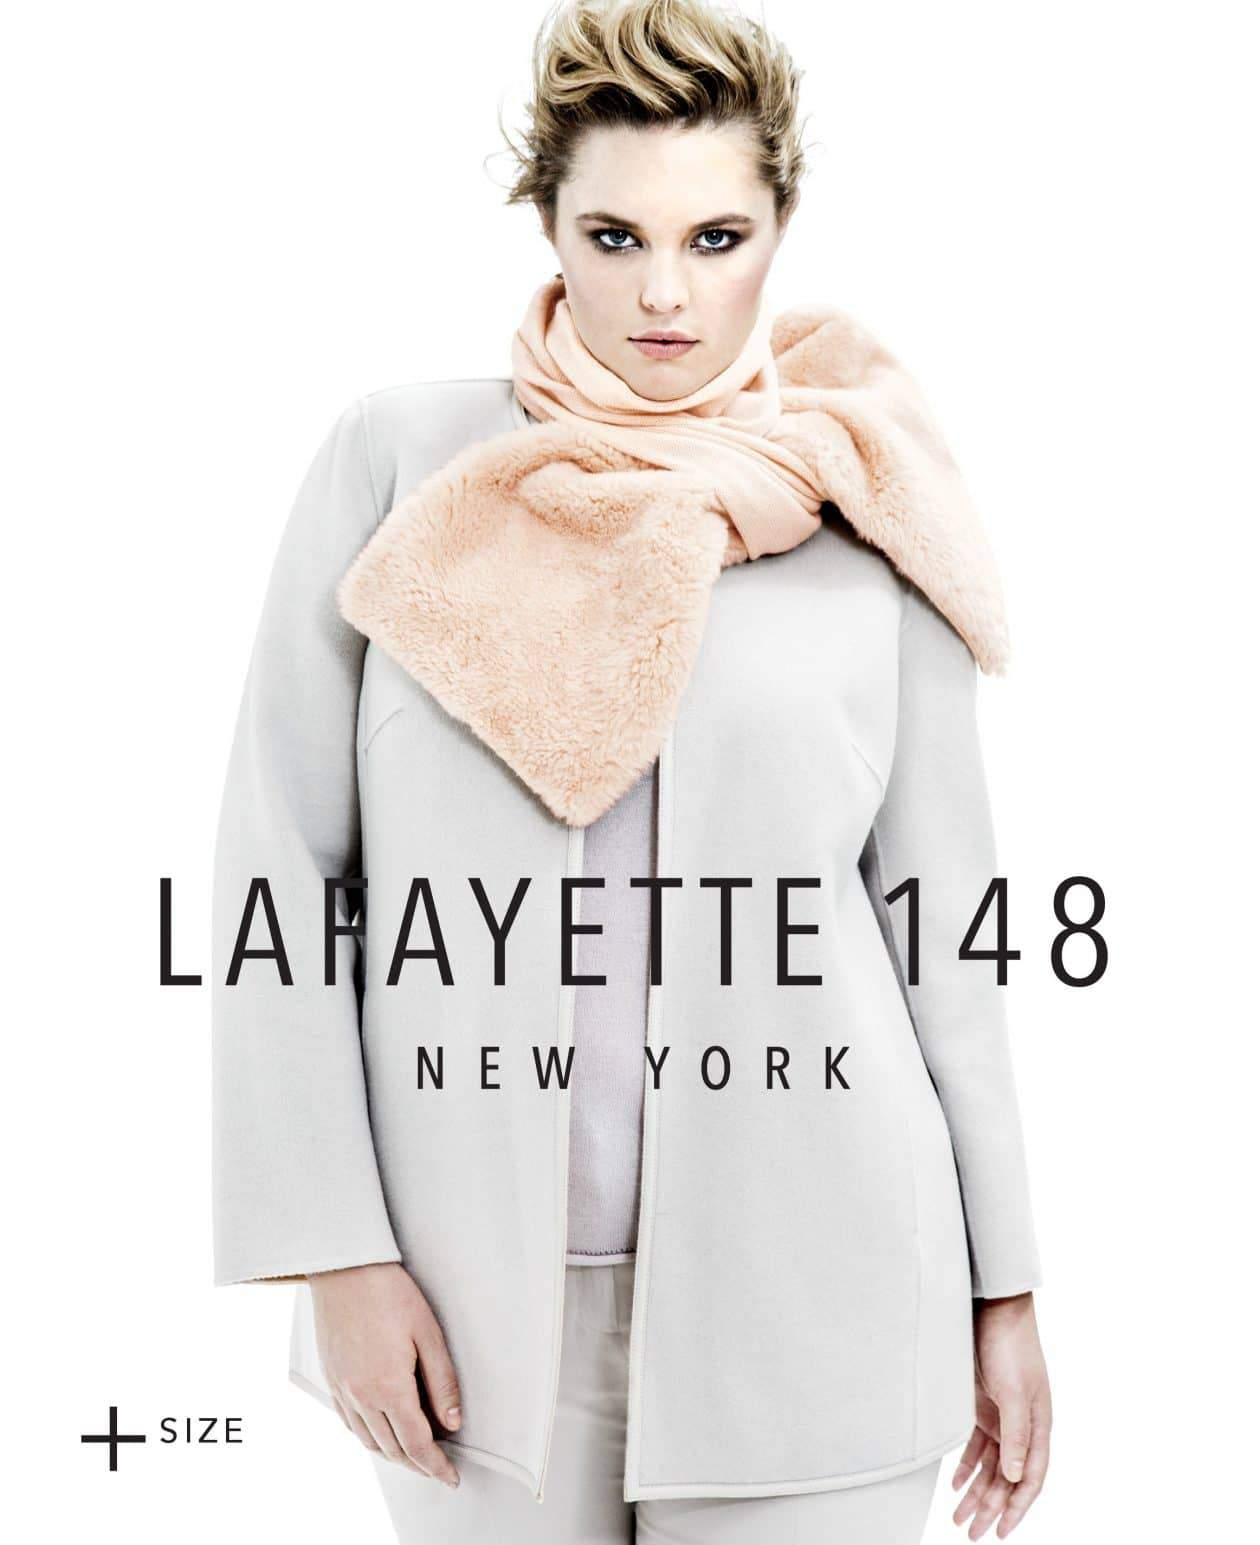 Lafayette 148 NY Plus Size Fall 2014 Look Book